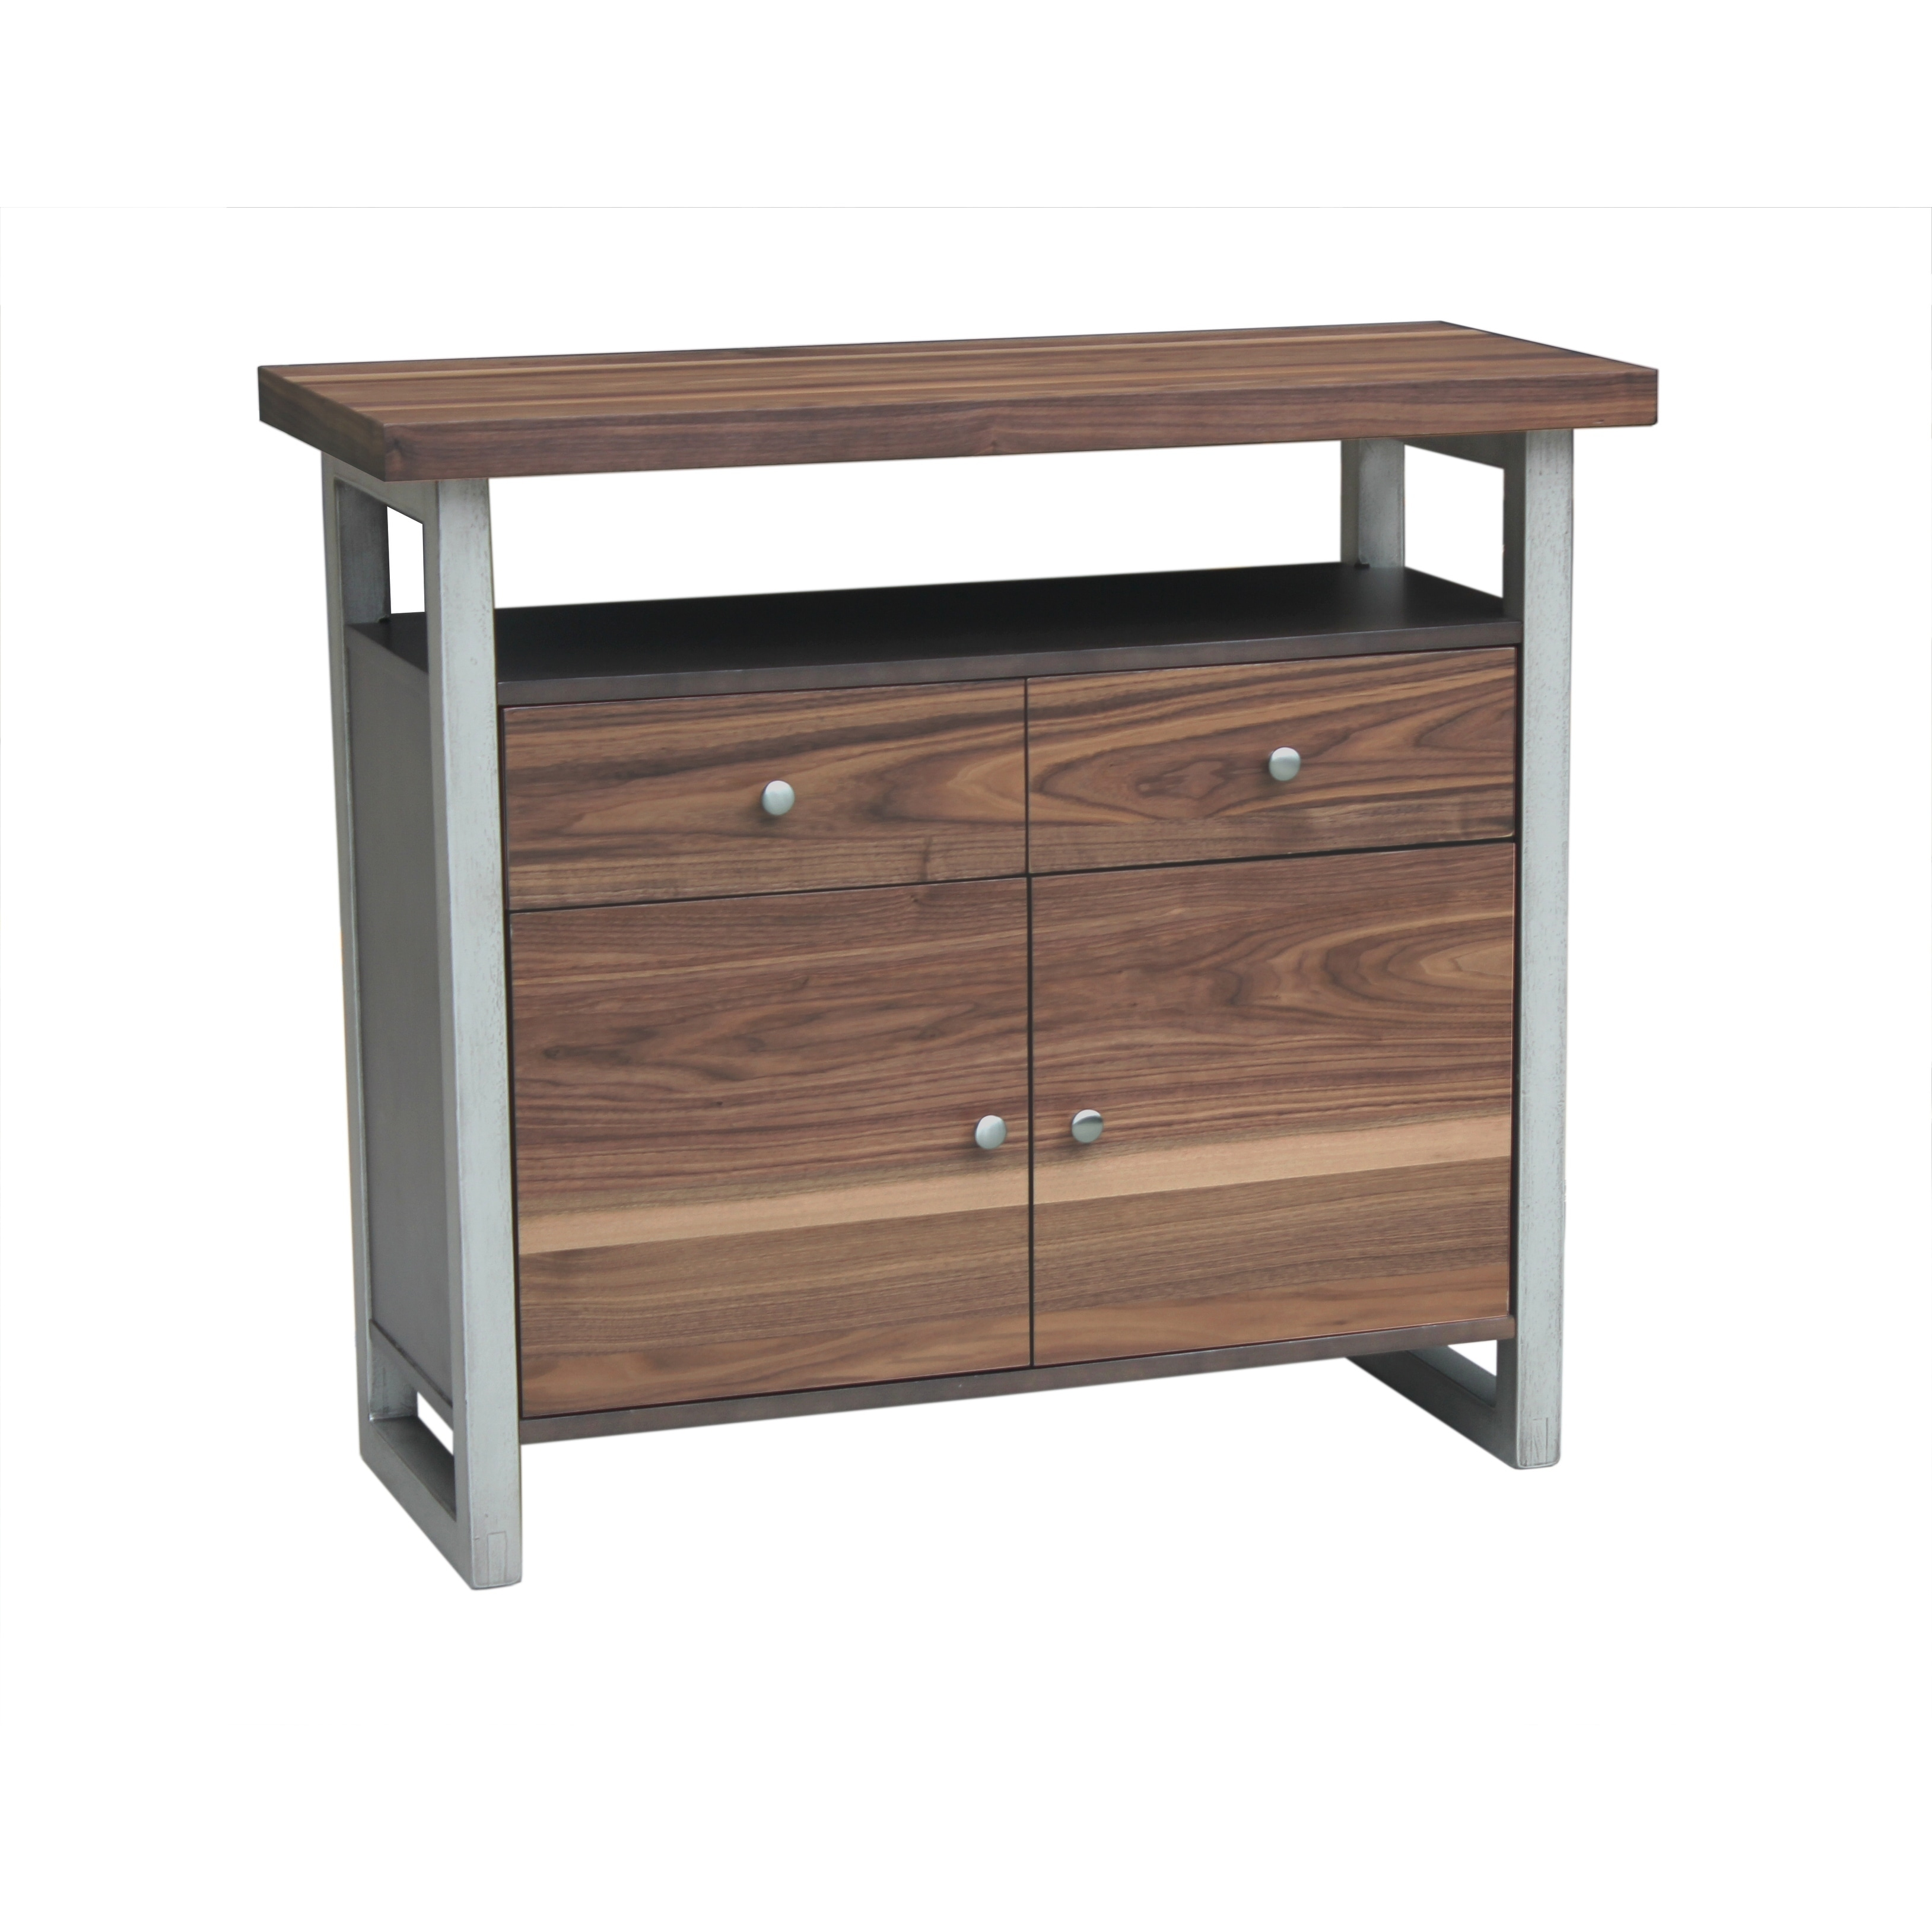 Shop spring creek industrial natural walnut server free shipping today overstock com 22158250